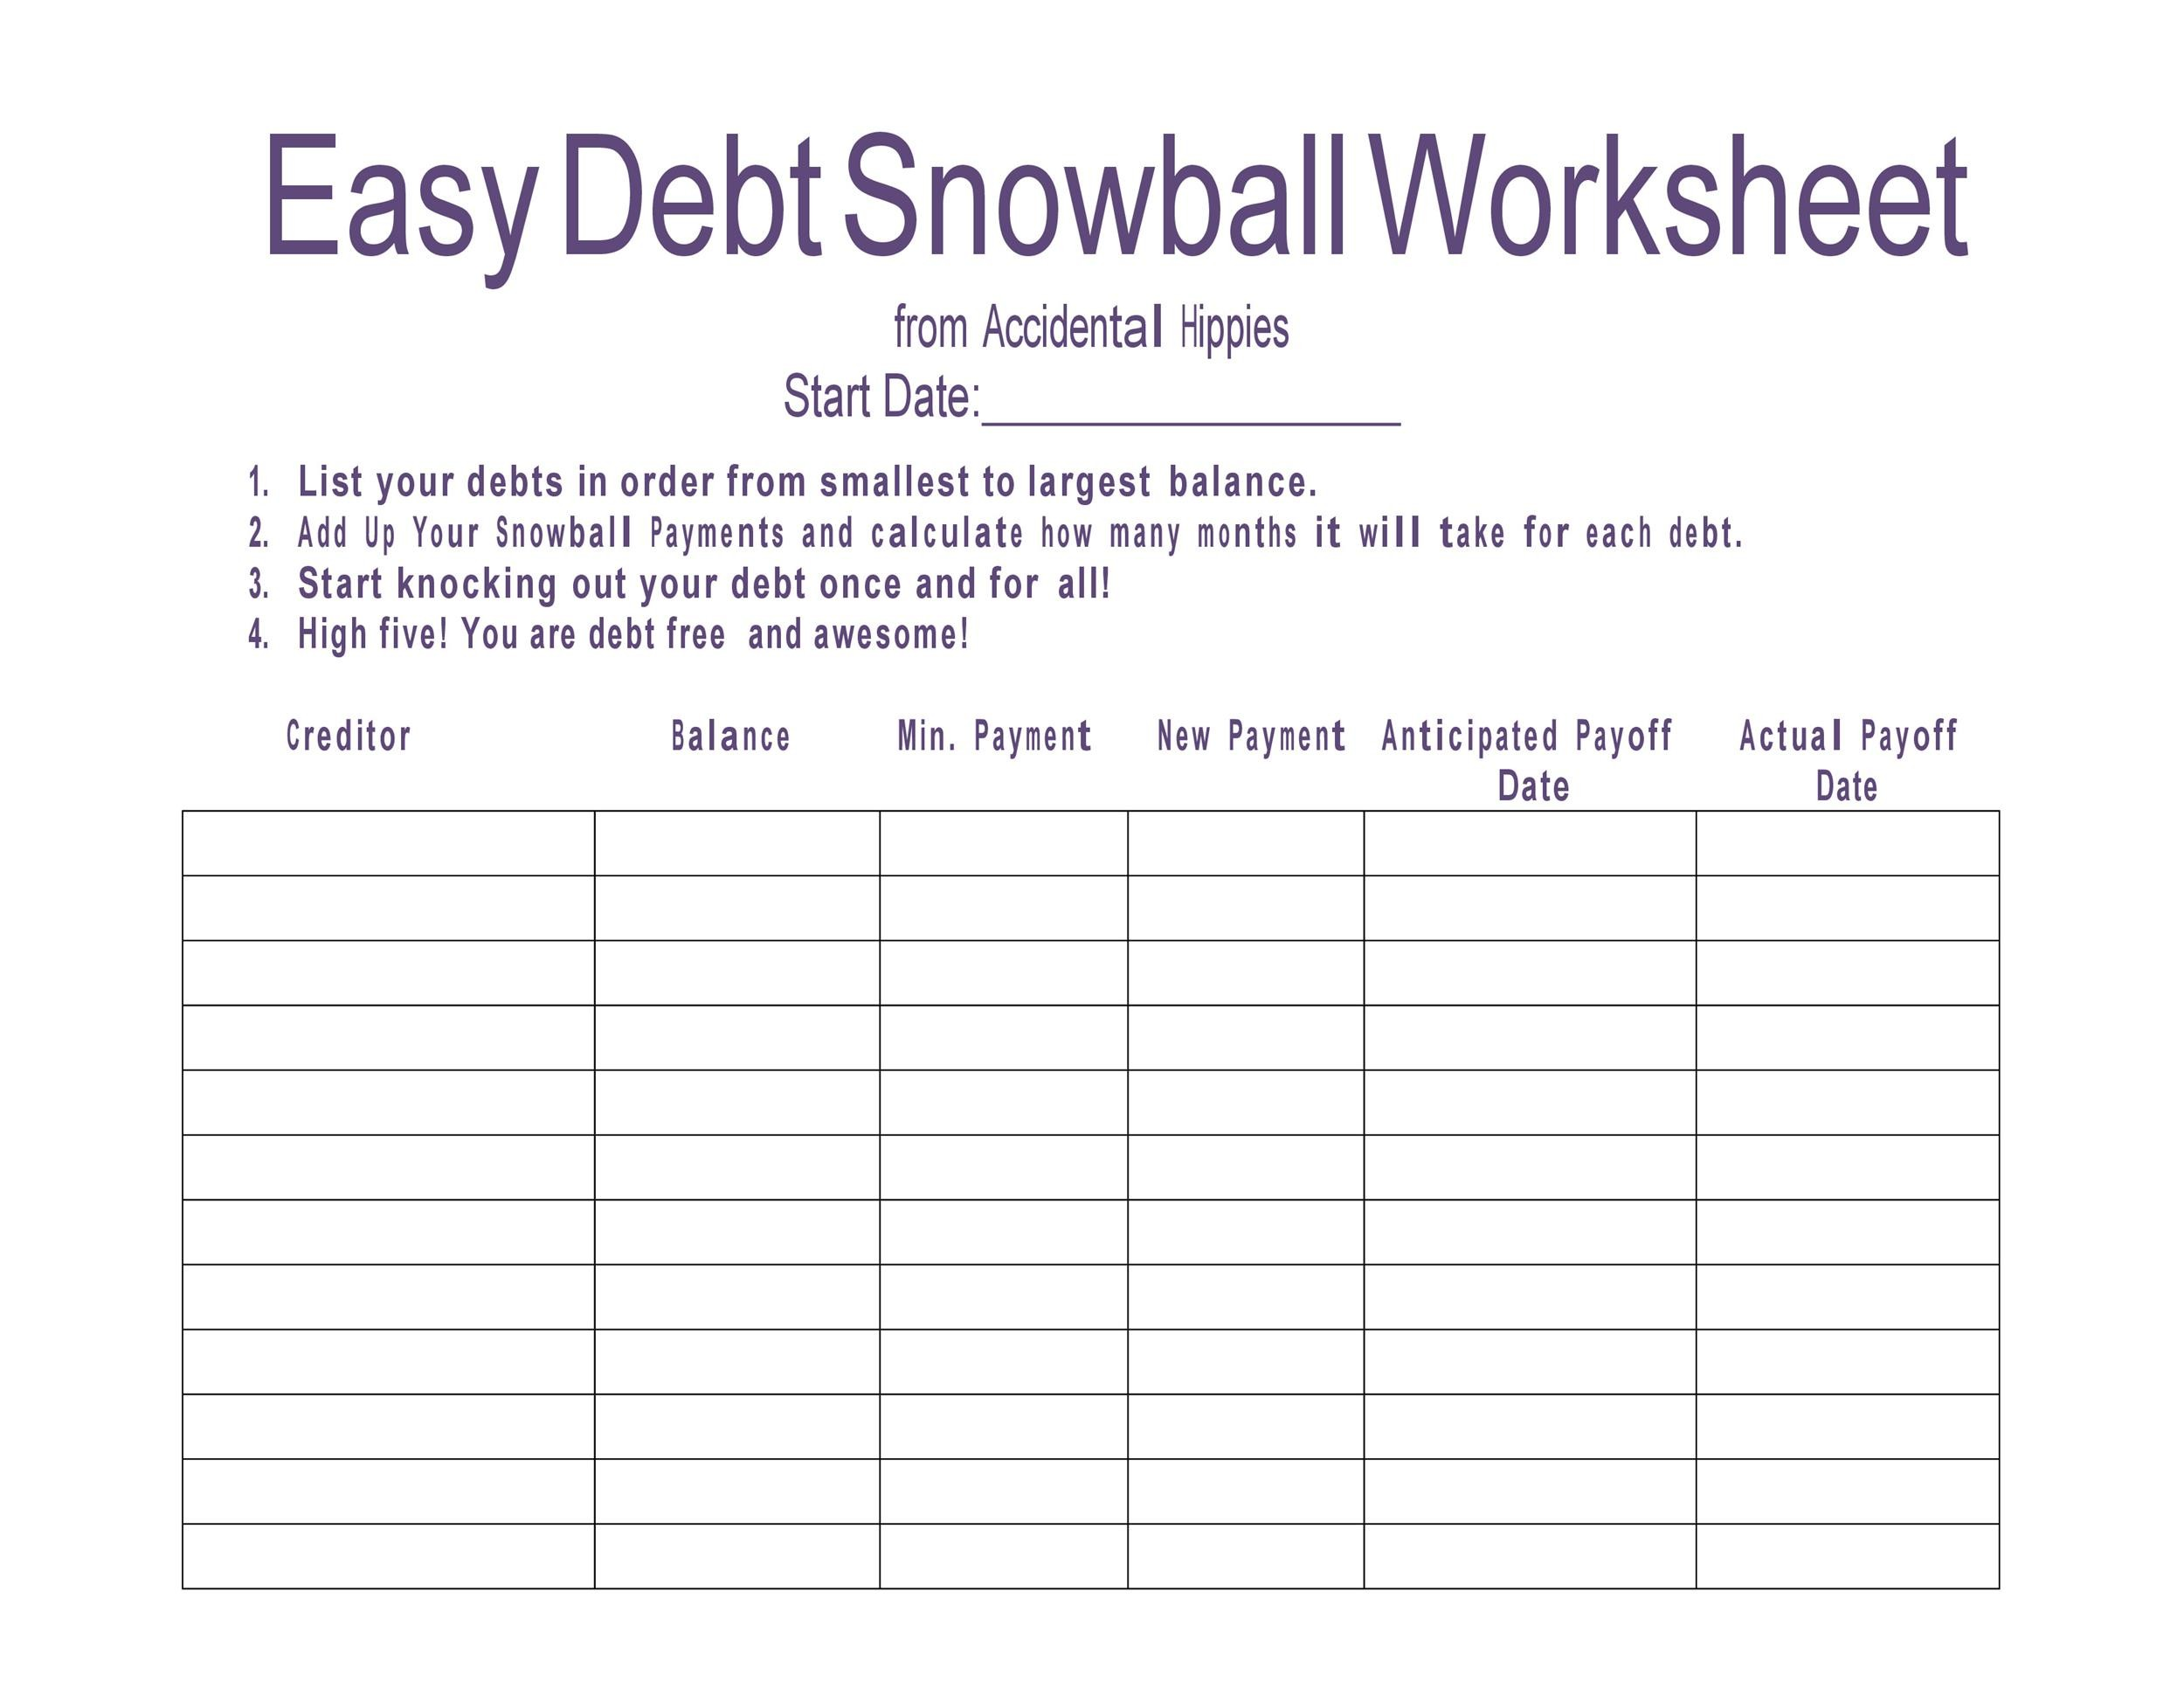 38 Debt Snowball Spreadsheets, Forms  Calculators ❄❄❄